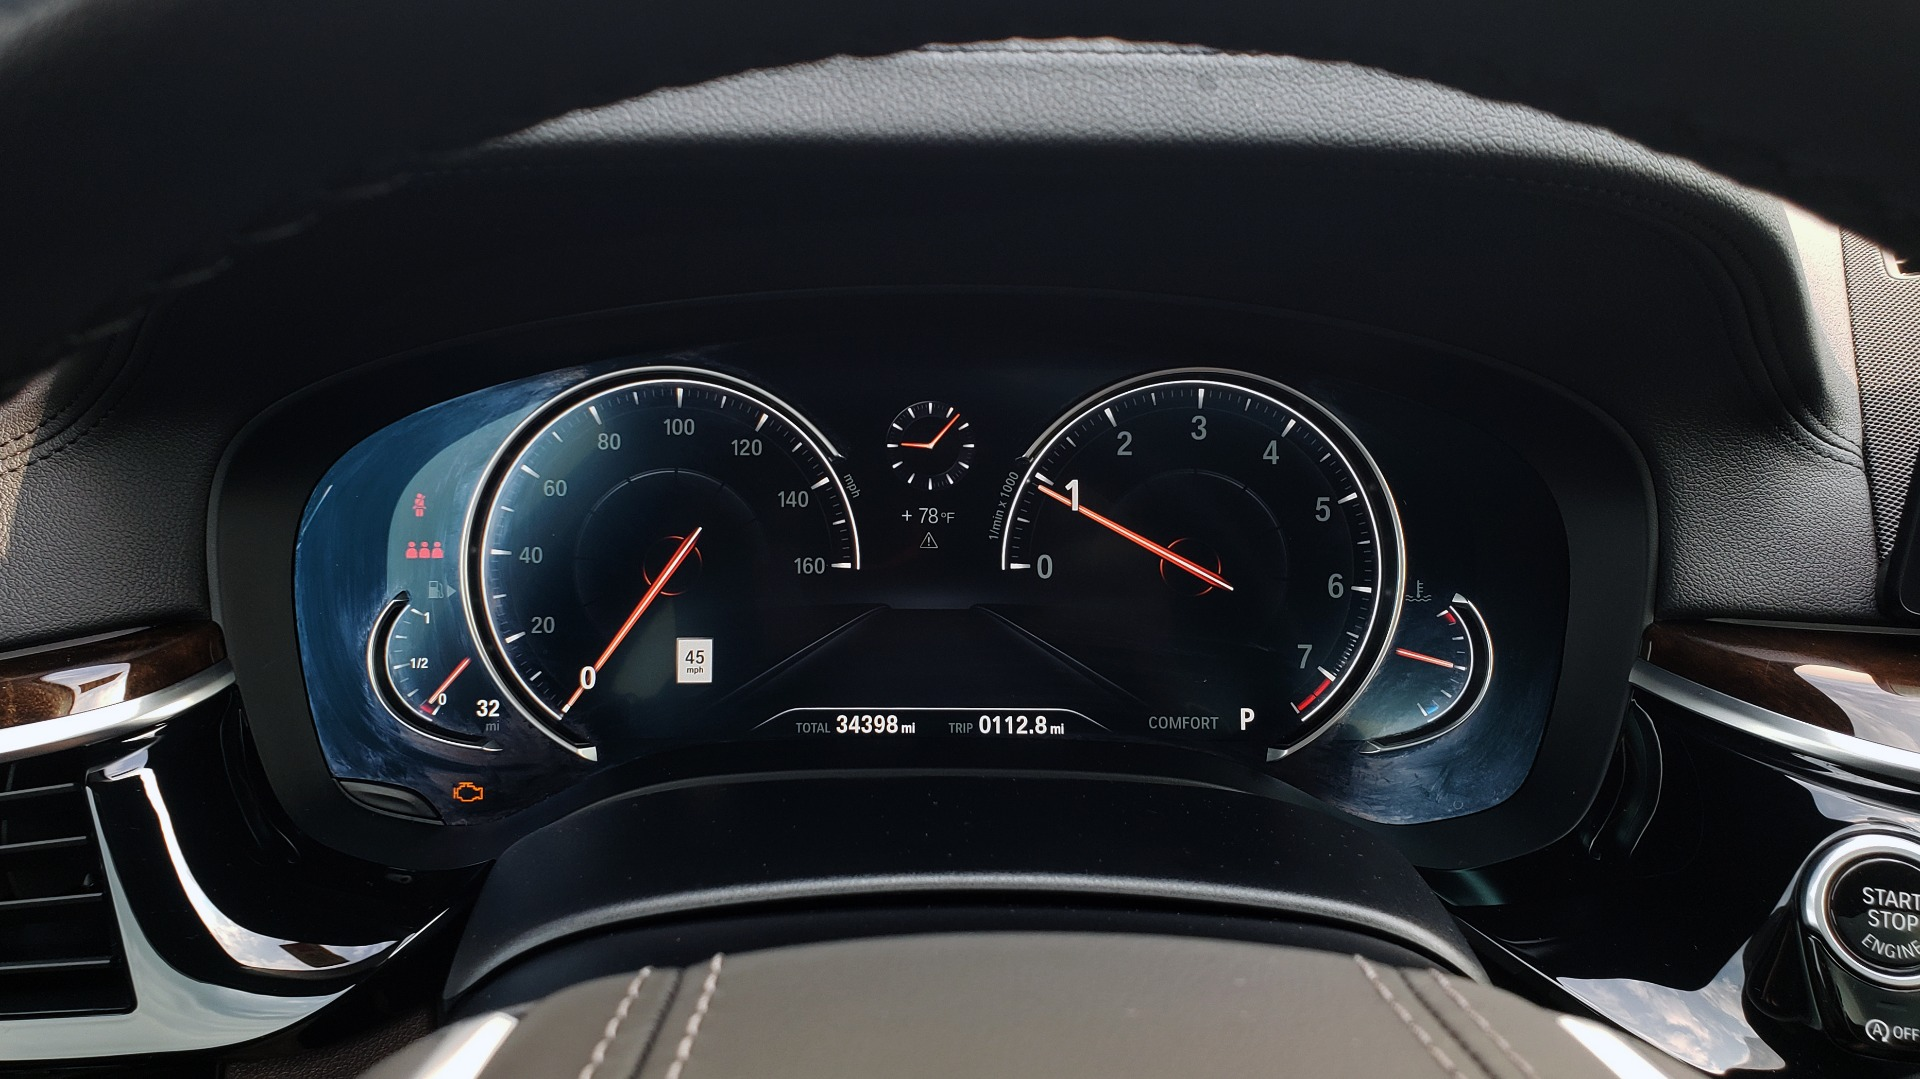 Used 2018 BMW 5 SERIES 540I XDRIVE PREMIUM / EXECUTIVE / LUXURY / H/K SND / REMOTE CONTROL PARKING for sale $40,995 at Formula Imports in Charlotte NC 28227 40